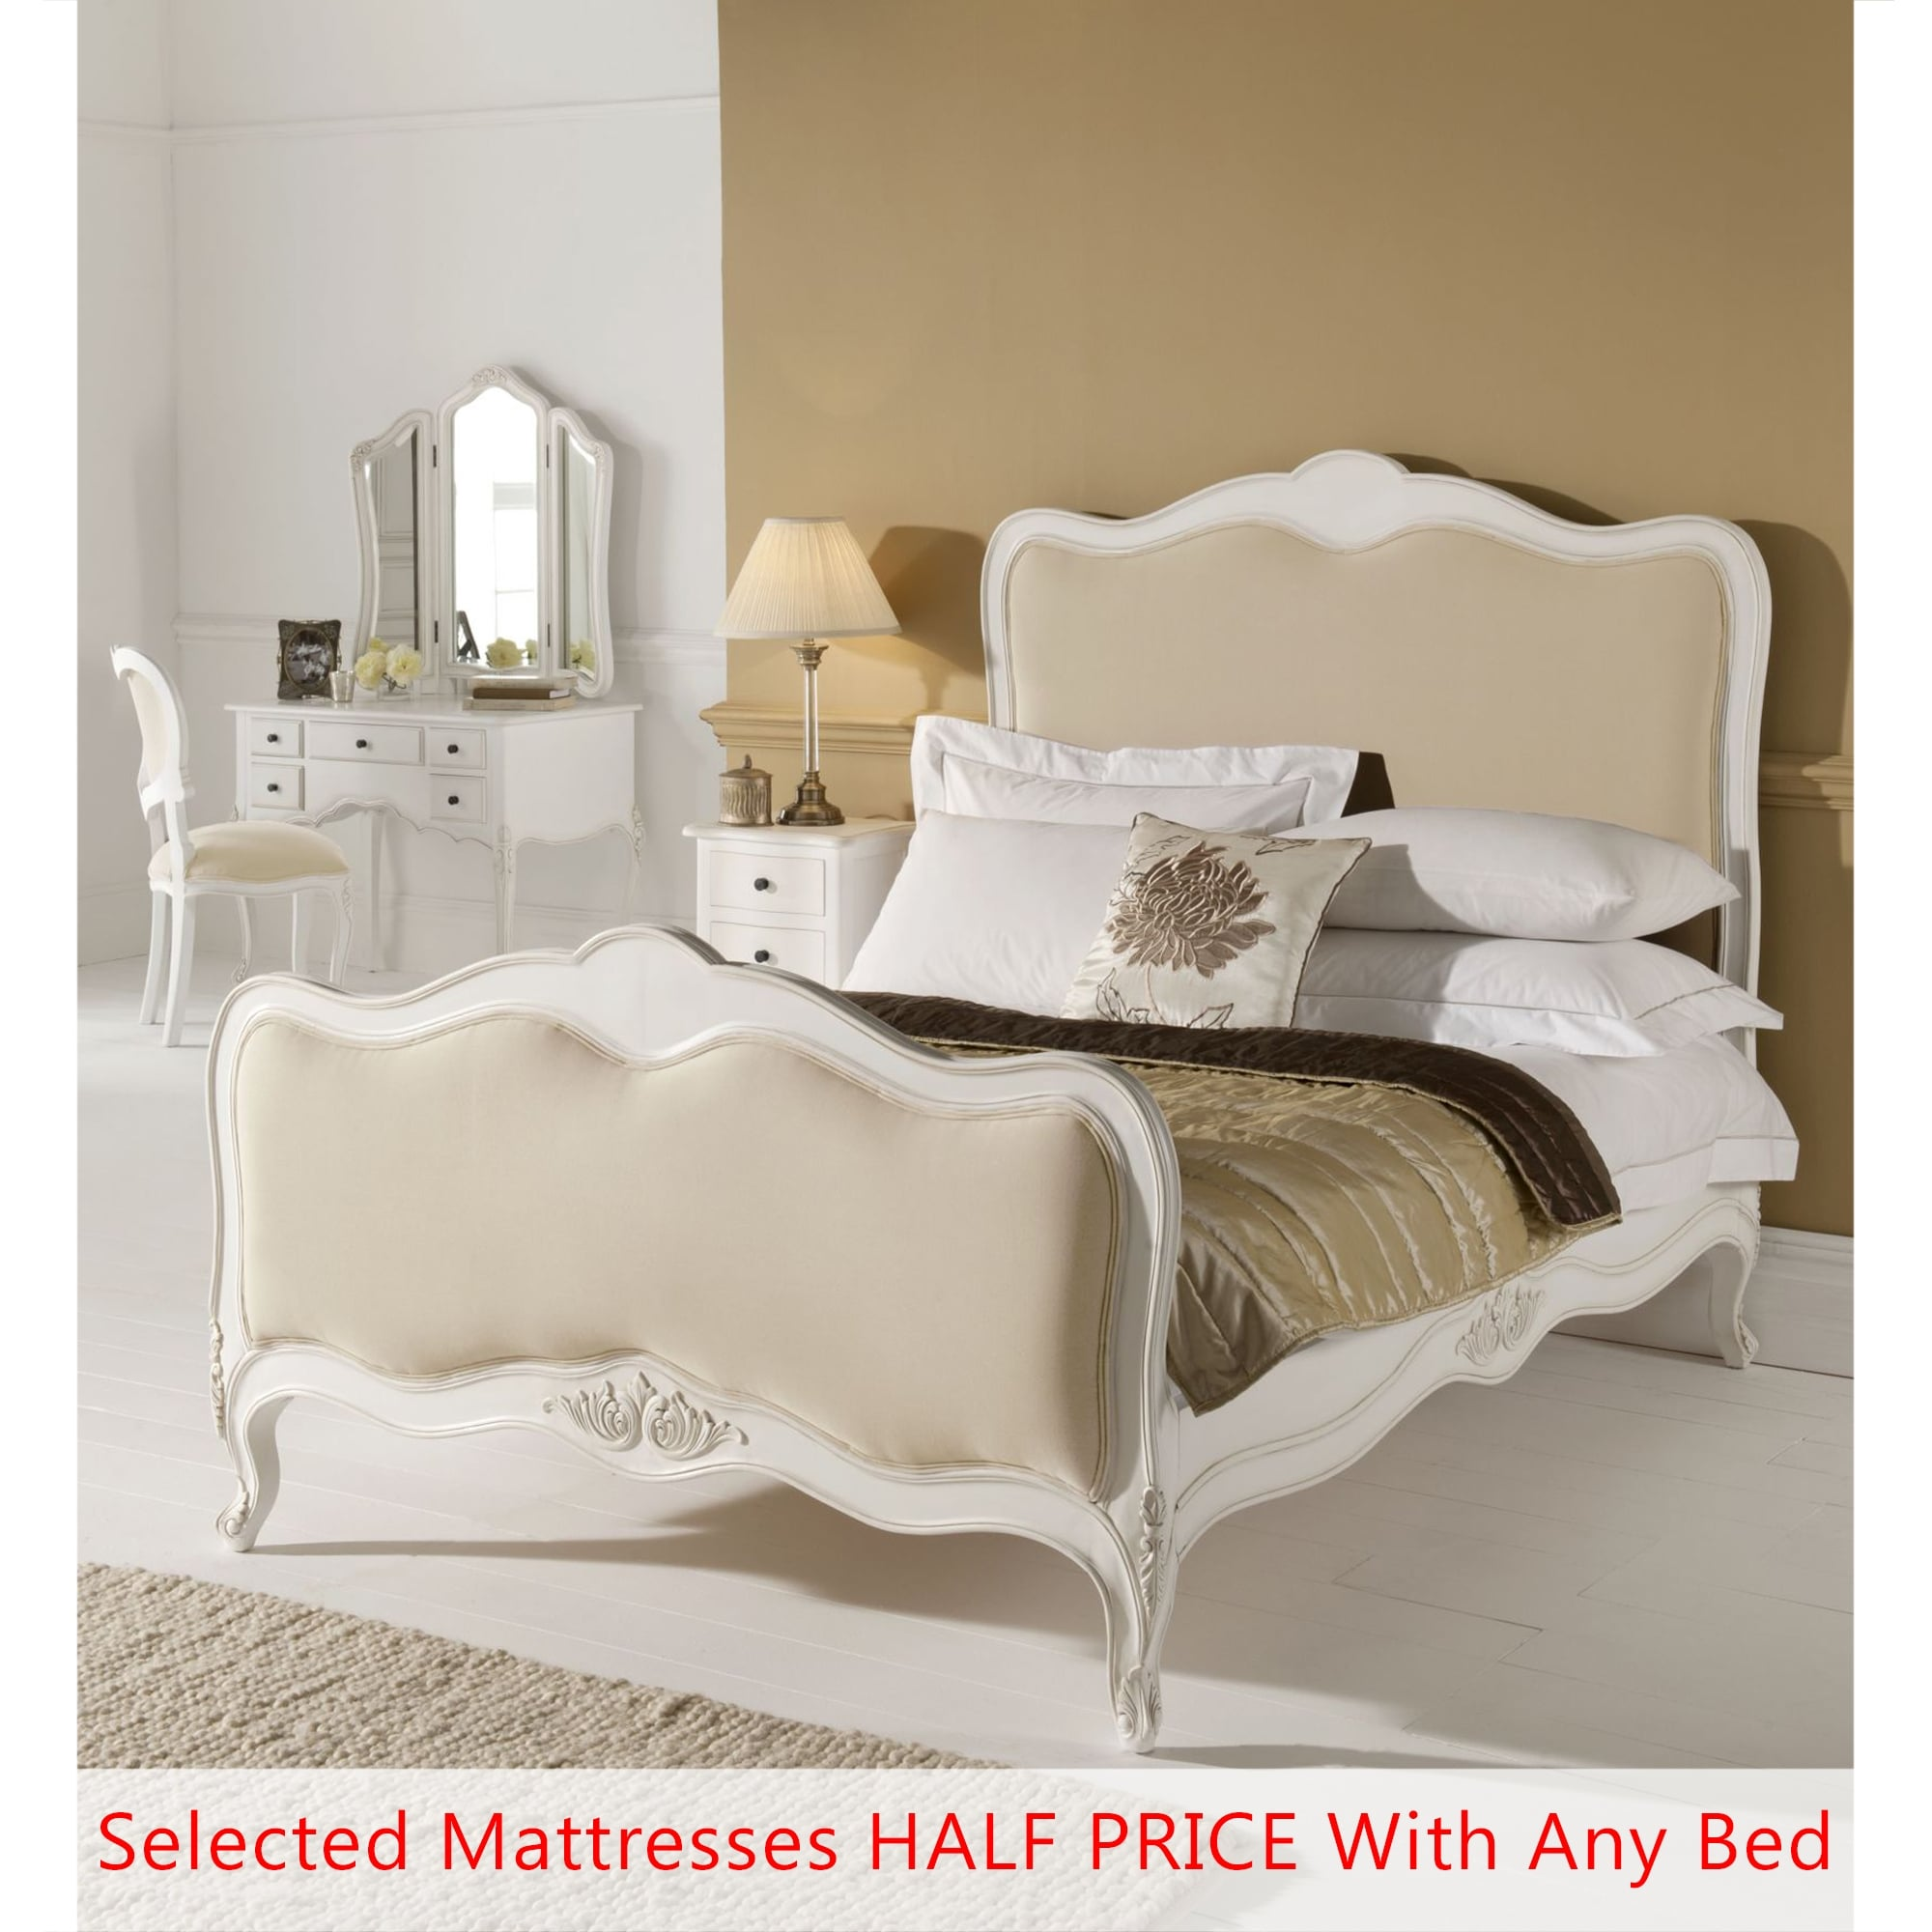 photo tufted bedroom hopen mattresses frame full casper alaskan sale costco kitchen deals fascinating slay dimensions mattress si bed of king set just stand wyoming and folding size best headboards queen standard wonderful ikea for dreams with raymour flanigan beds